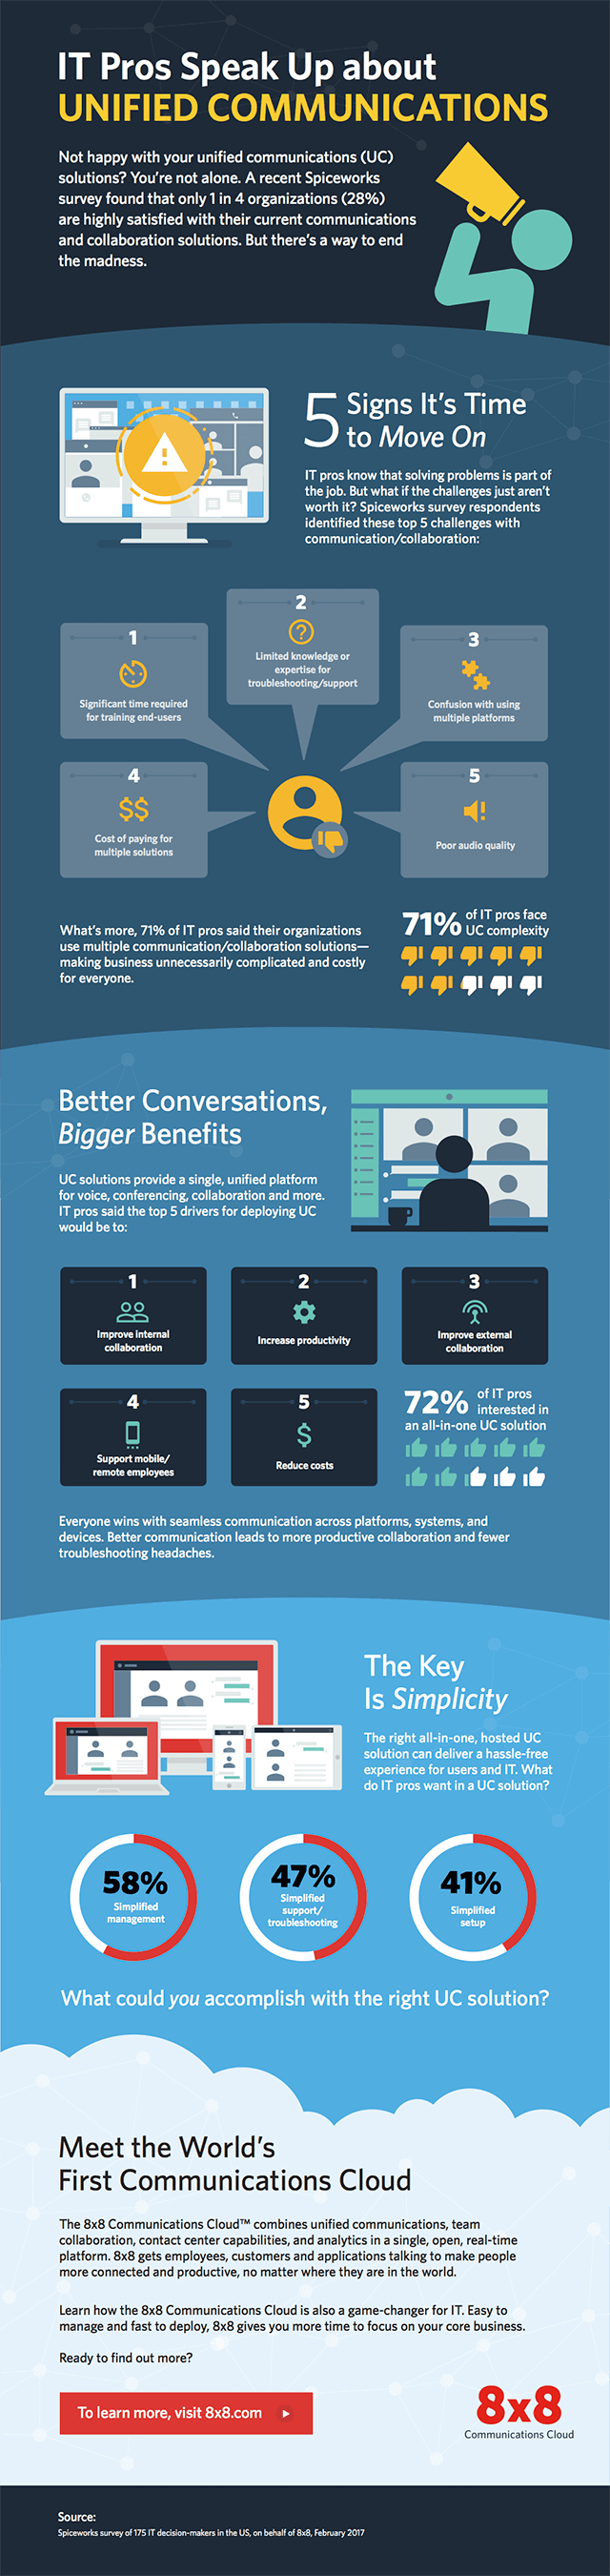 IT Pros Speak Up About Unified Communications